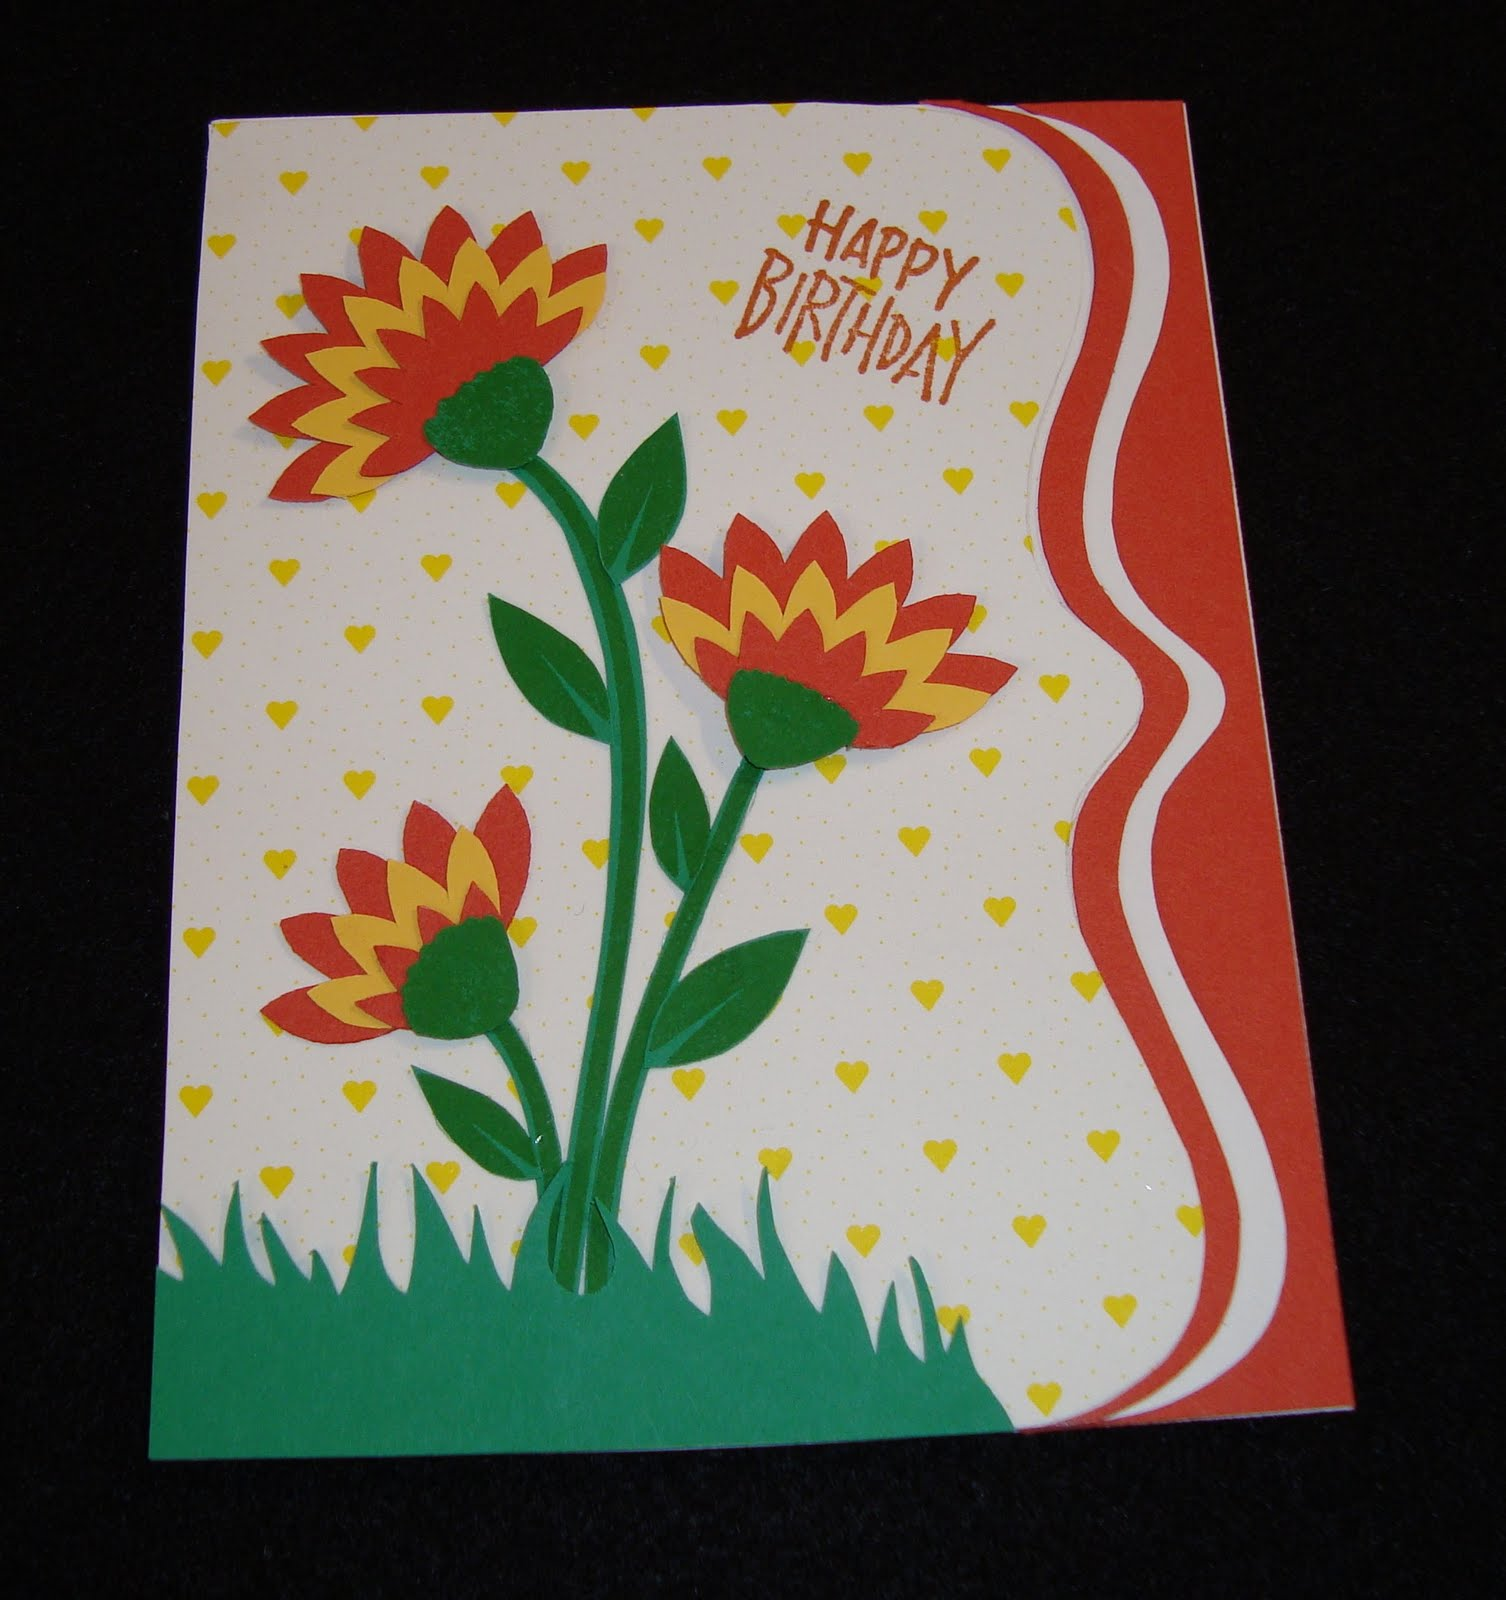 Owh stars and stamps our old blog tutorial flower card thanks again to esther for this beautiful card i love the idea of cutting up the flowers to make a new look izmirmasajfo